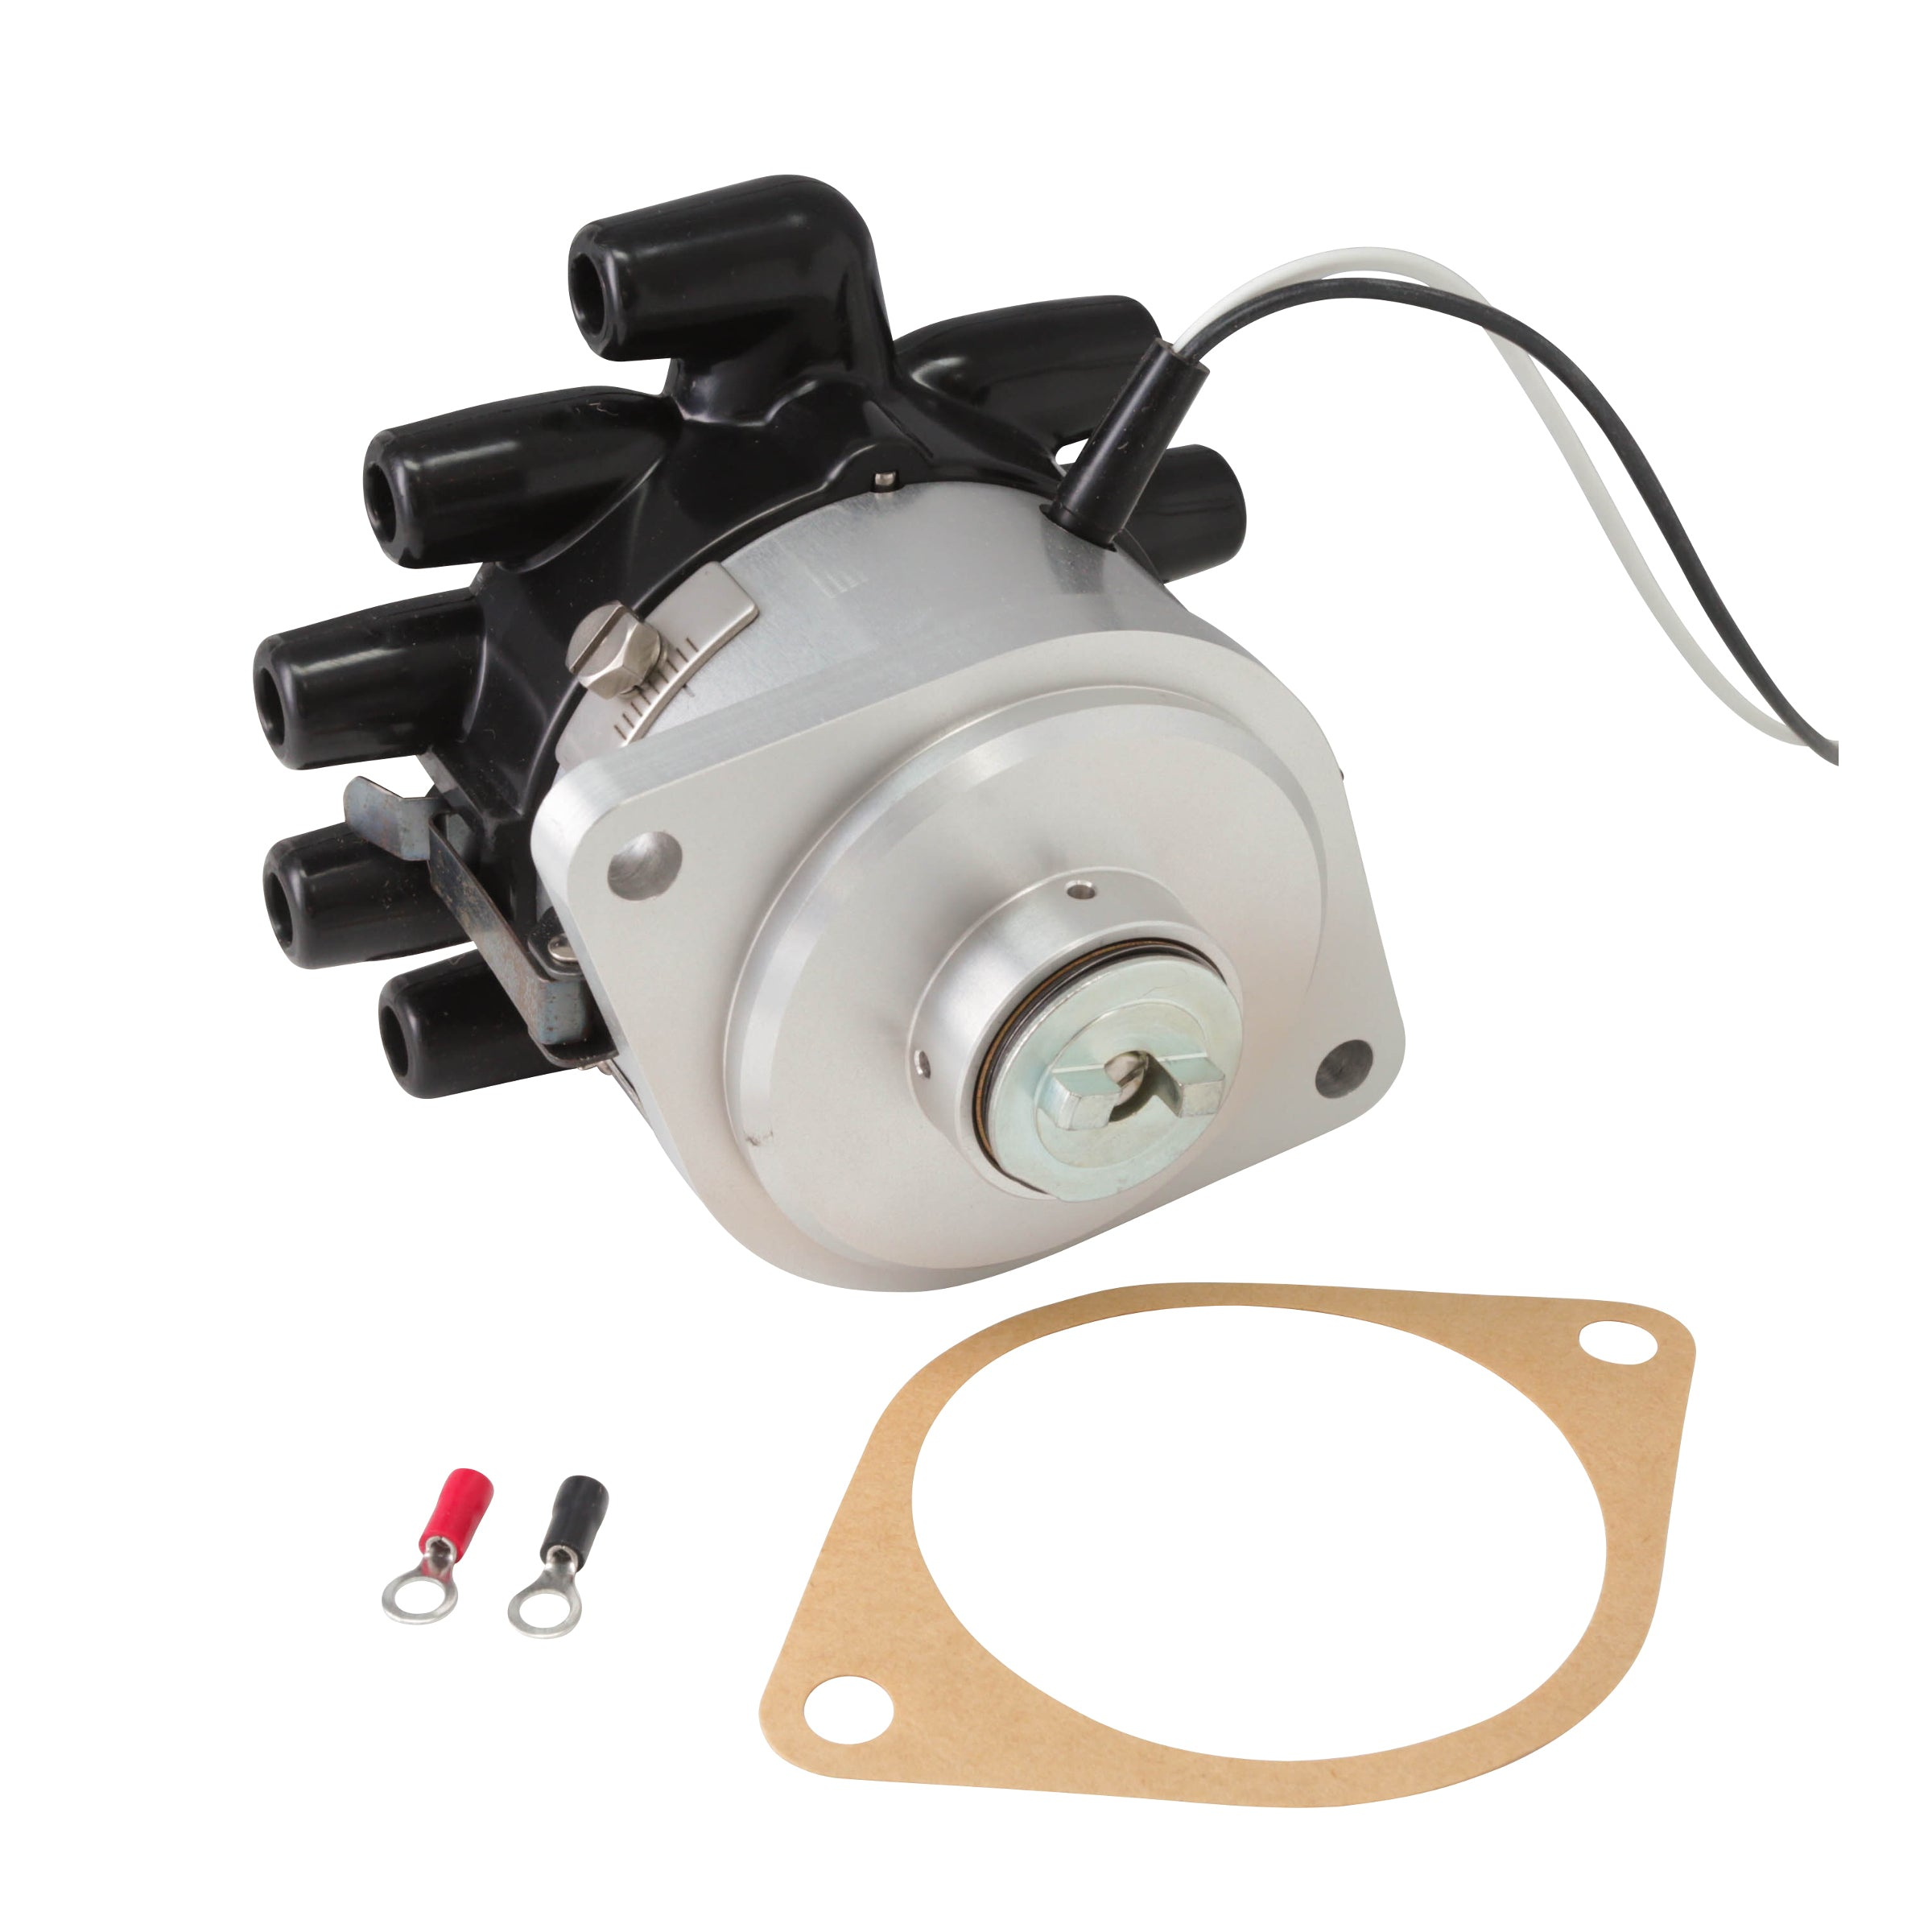 Genuine Stromberg E-Fire Electronic Distributor • 2 Bolt 6V Positive